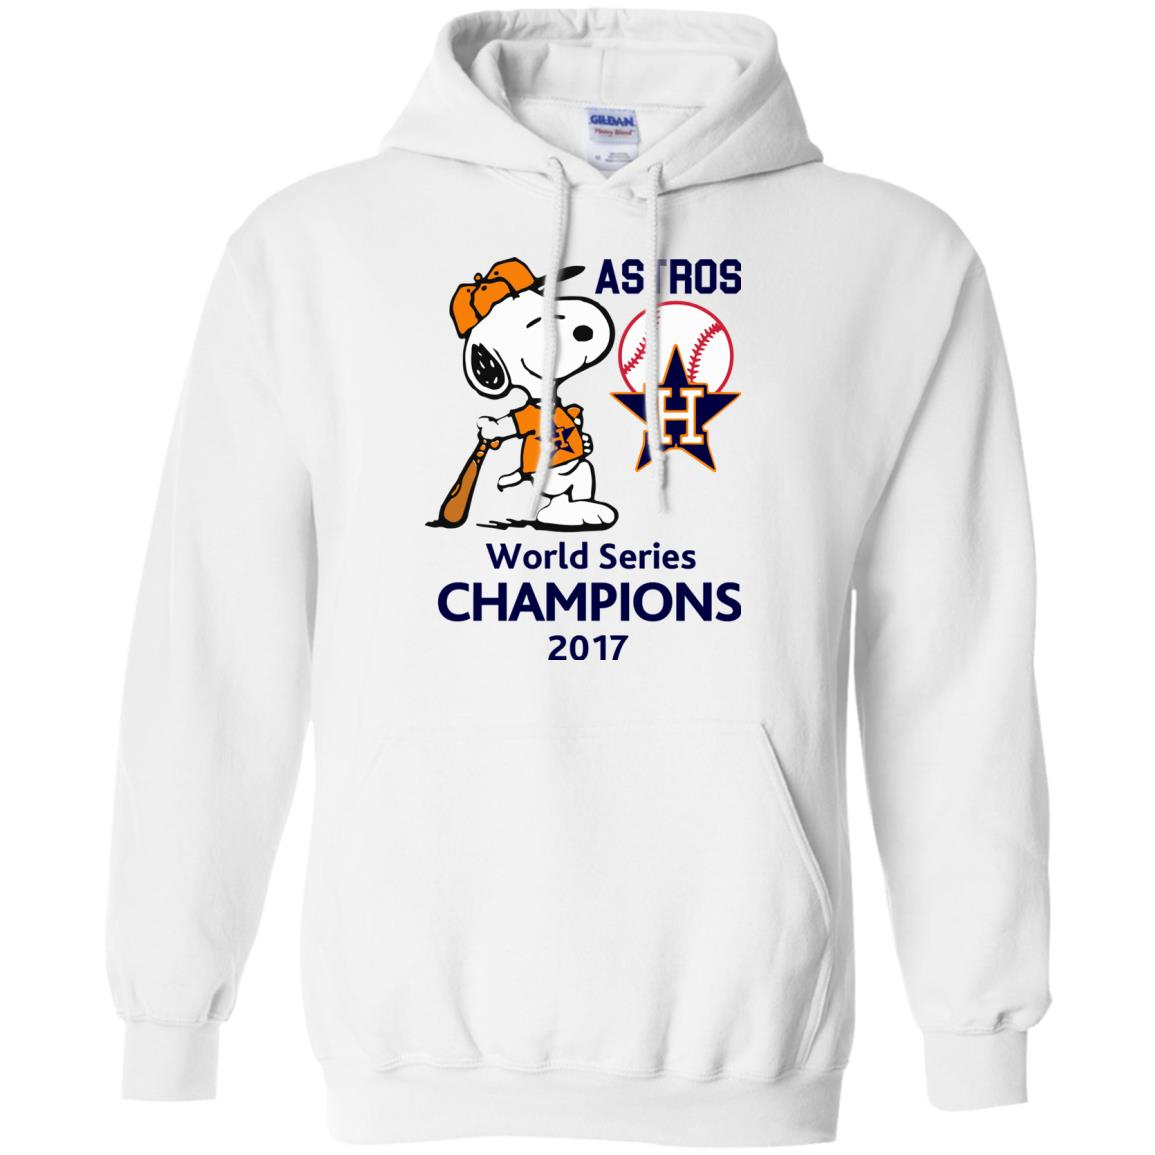 image 956 - Snoopy Astros World Series Champions Shirt, Sweater, Hoodie